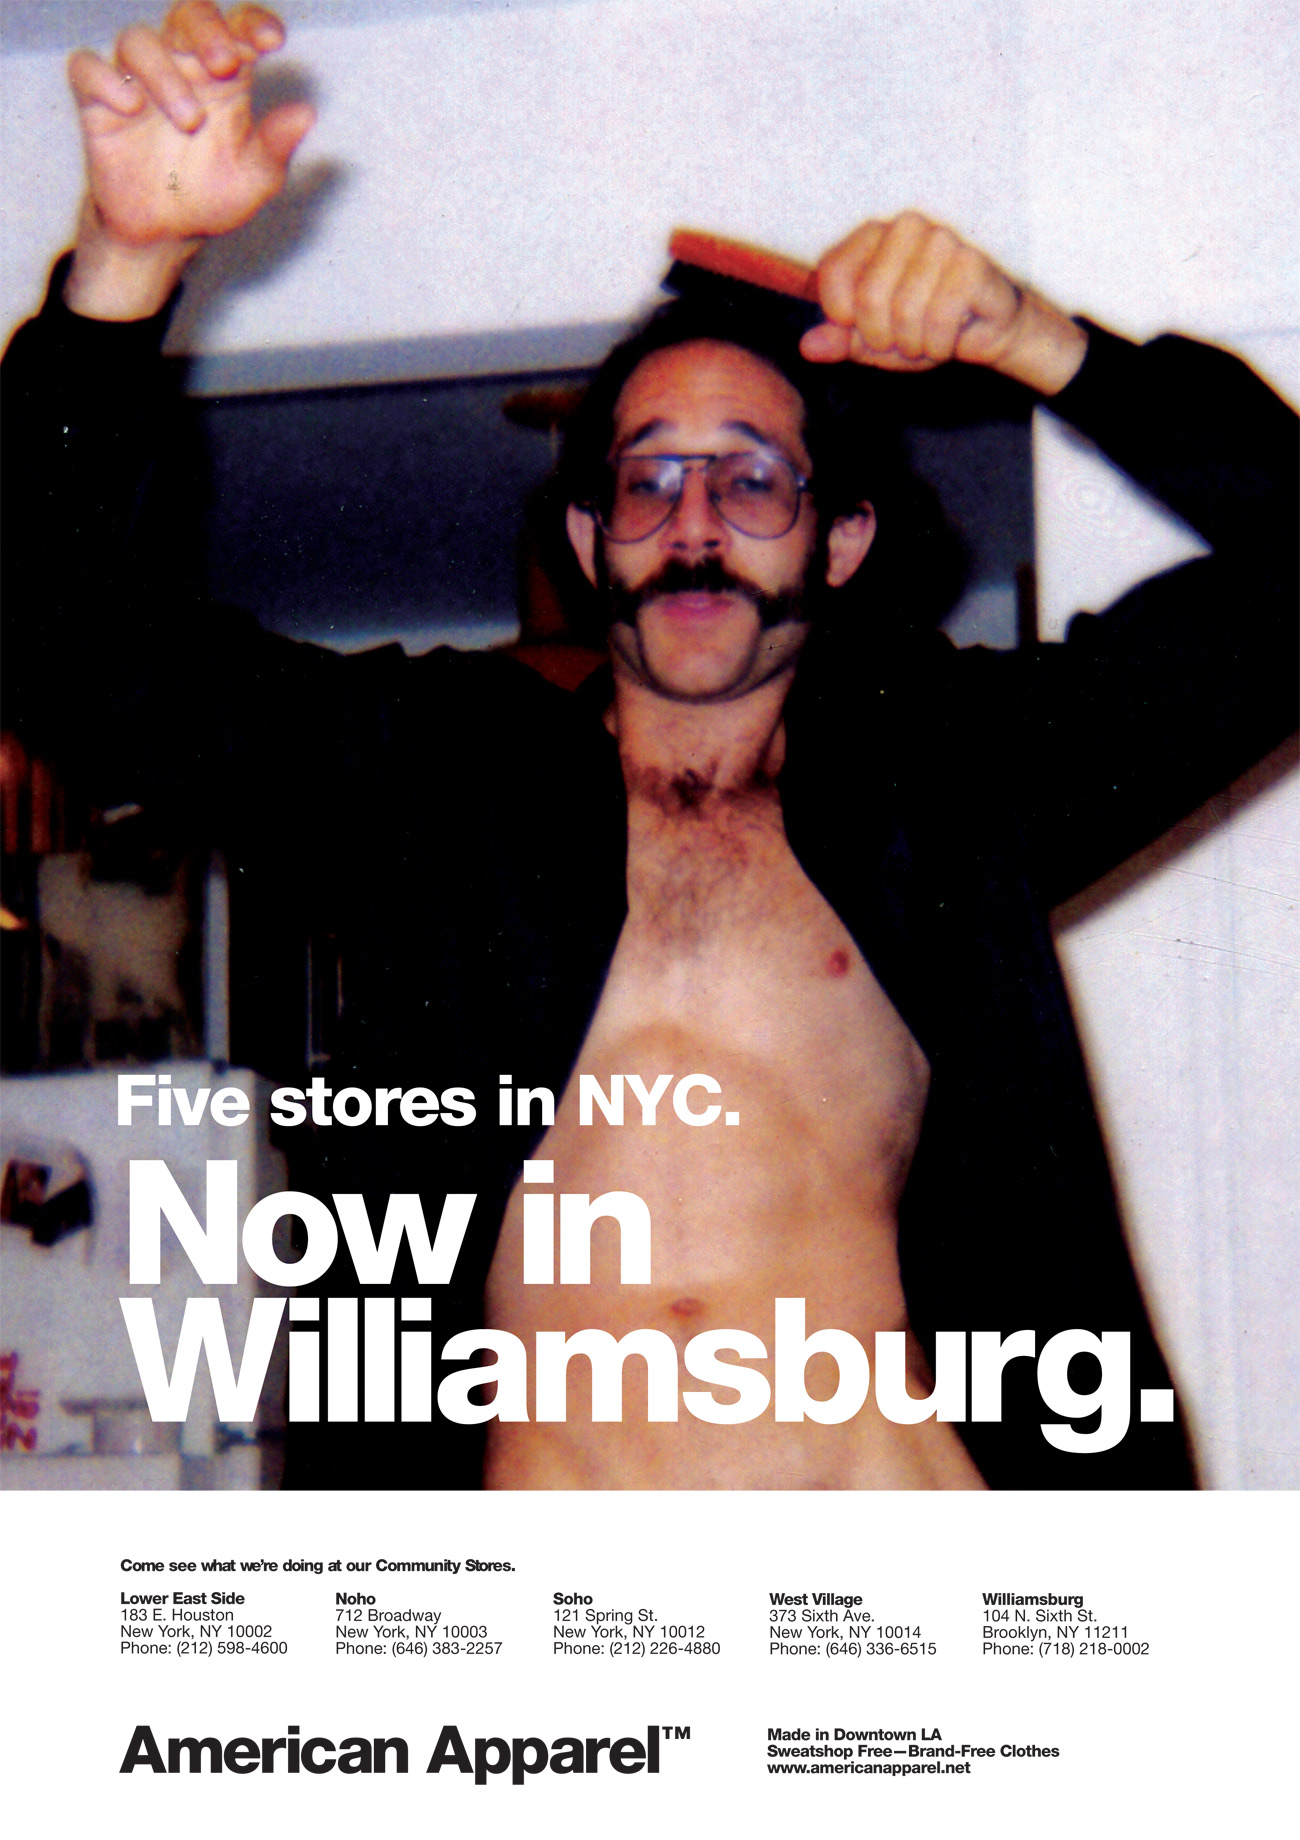 And here's the founder and CEO himself. Flavorwire labeled this ad as a representation of  The Dov Charney-Williamsburg axis of evil.